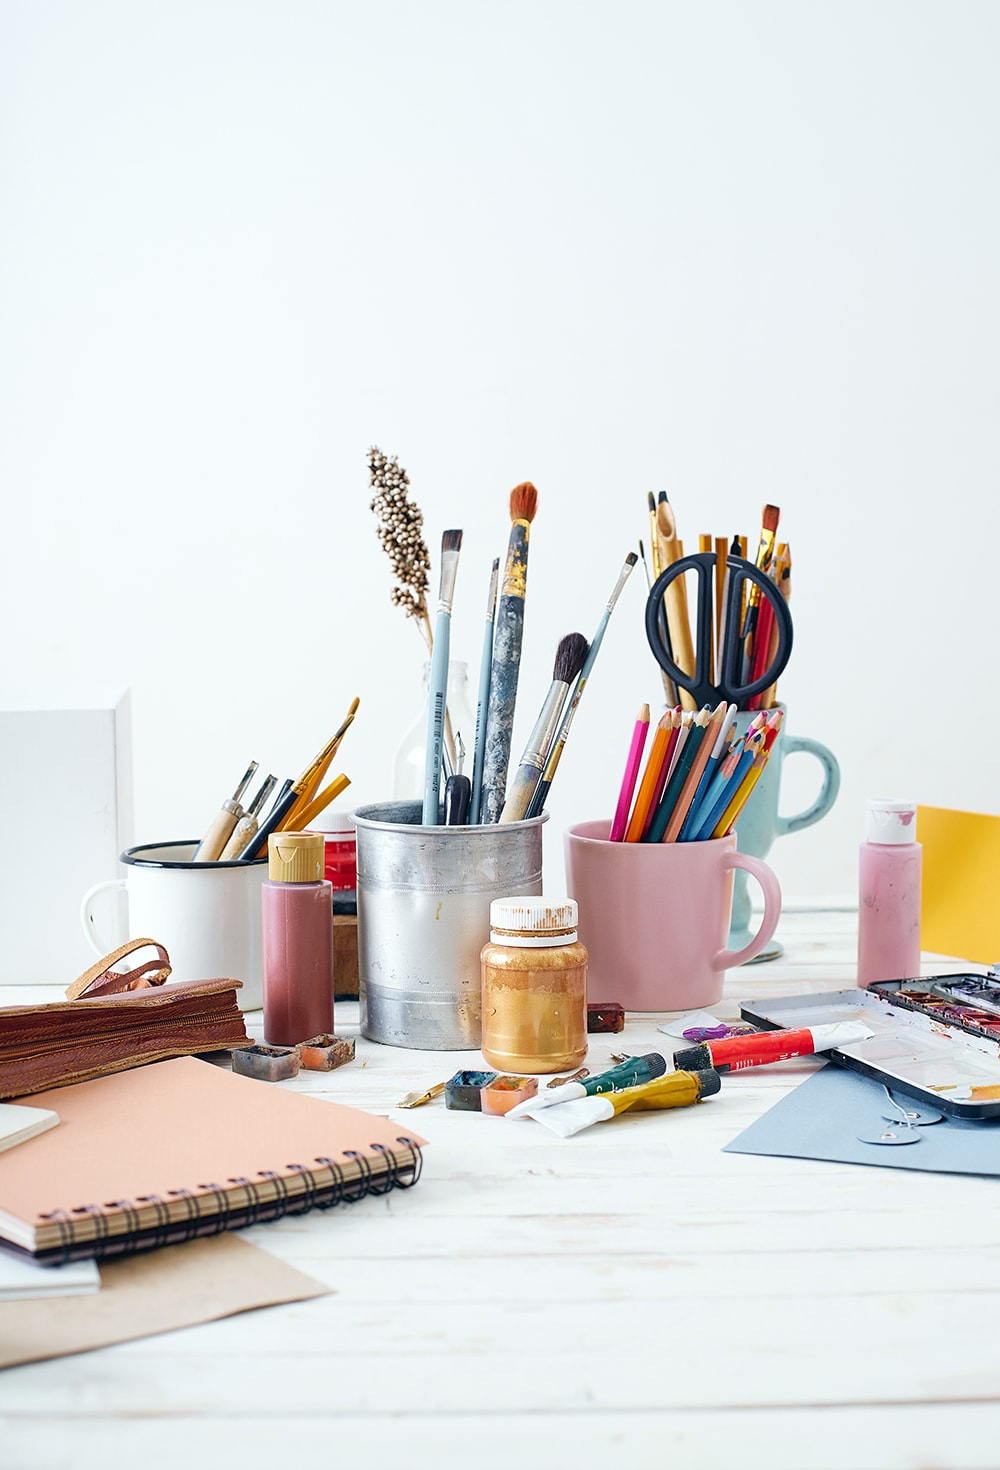 Art supplies on a desk including pencils. brushes, paper: to inspire you to find ways to make money with art